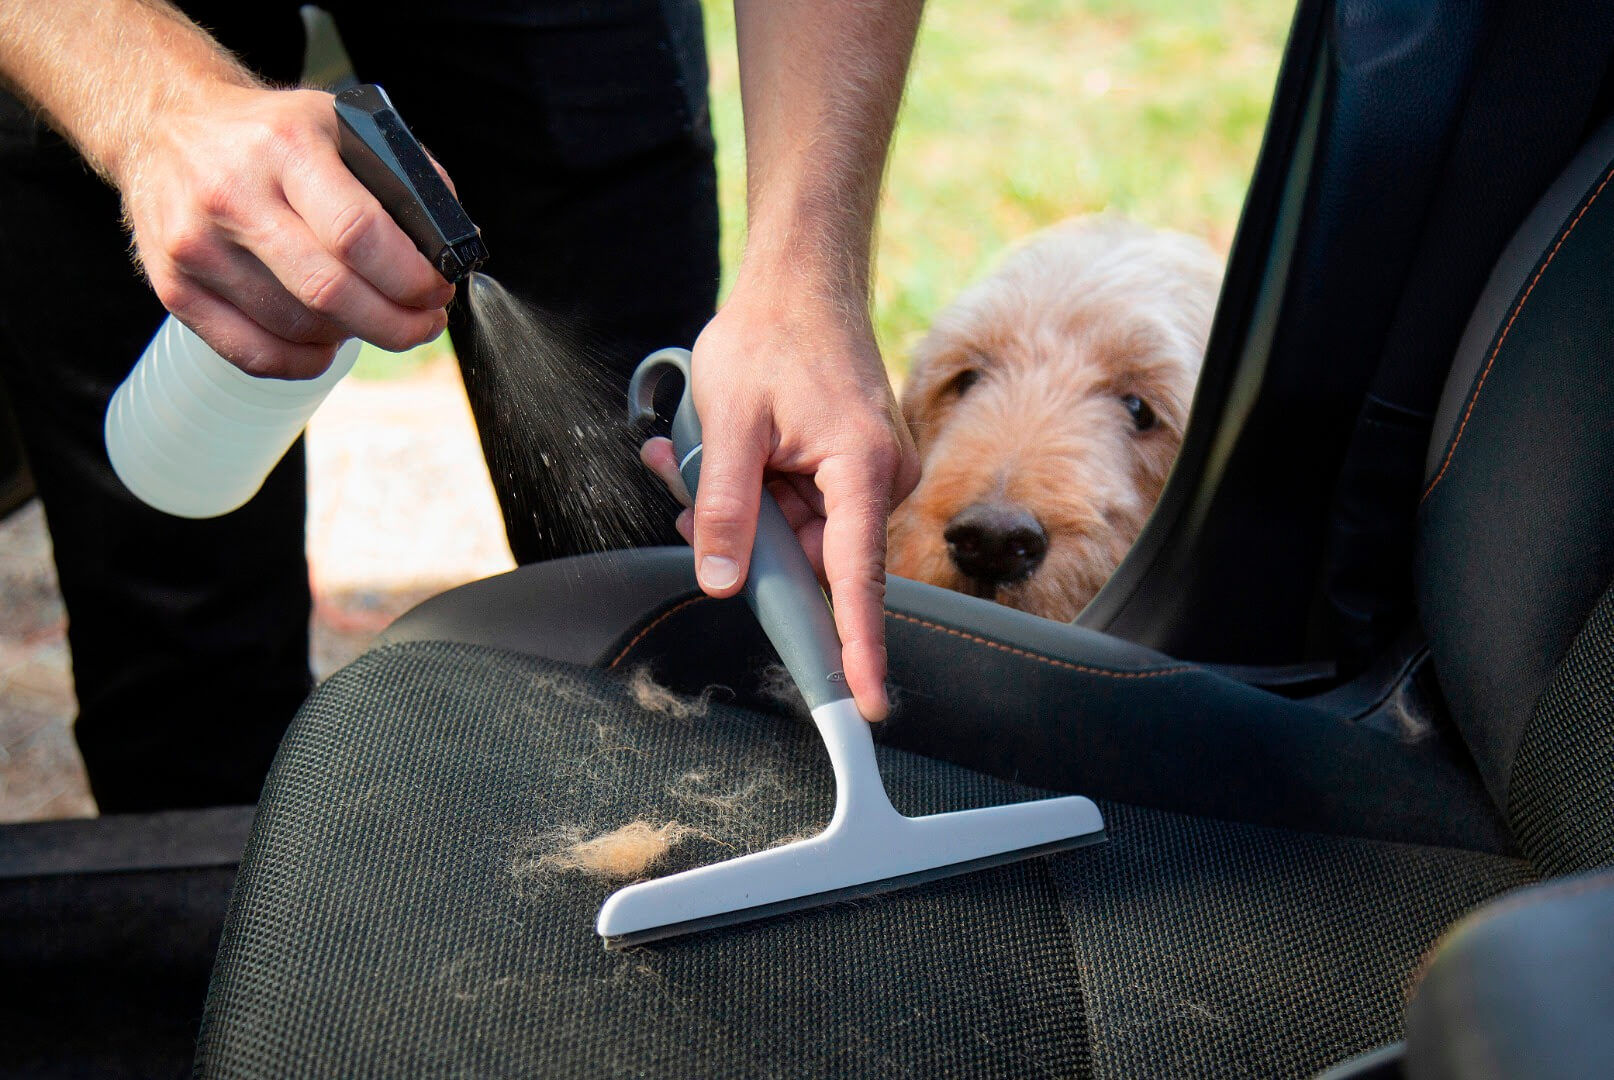 Someone spraying their car seat with water to help brush dog hair out of the car seat.